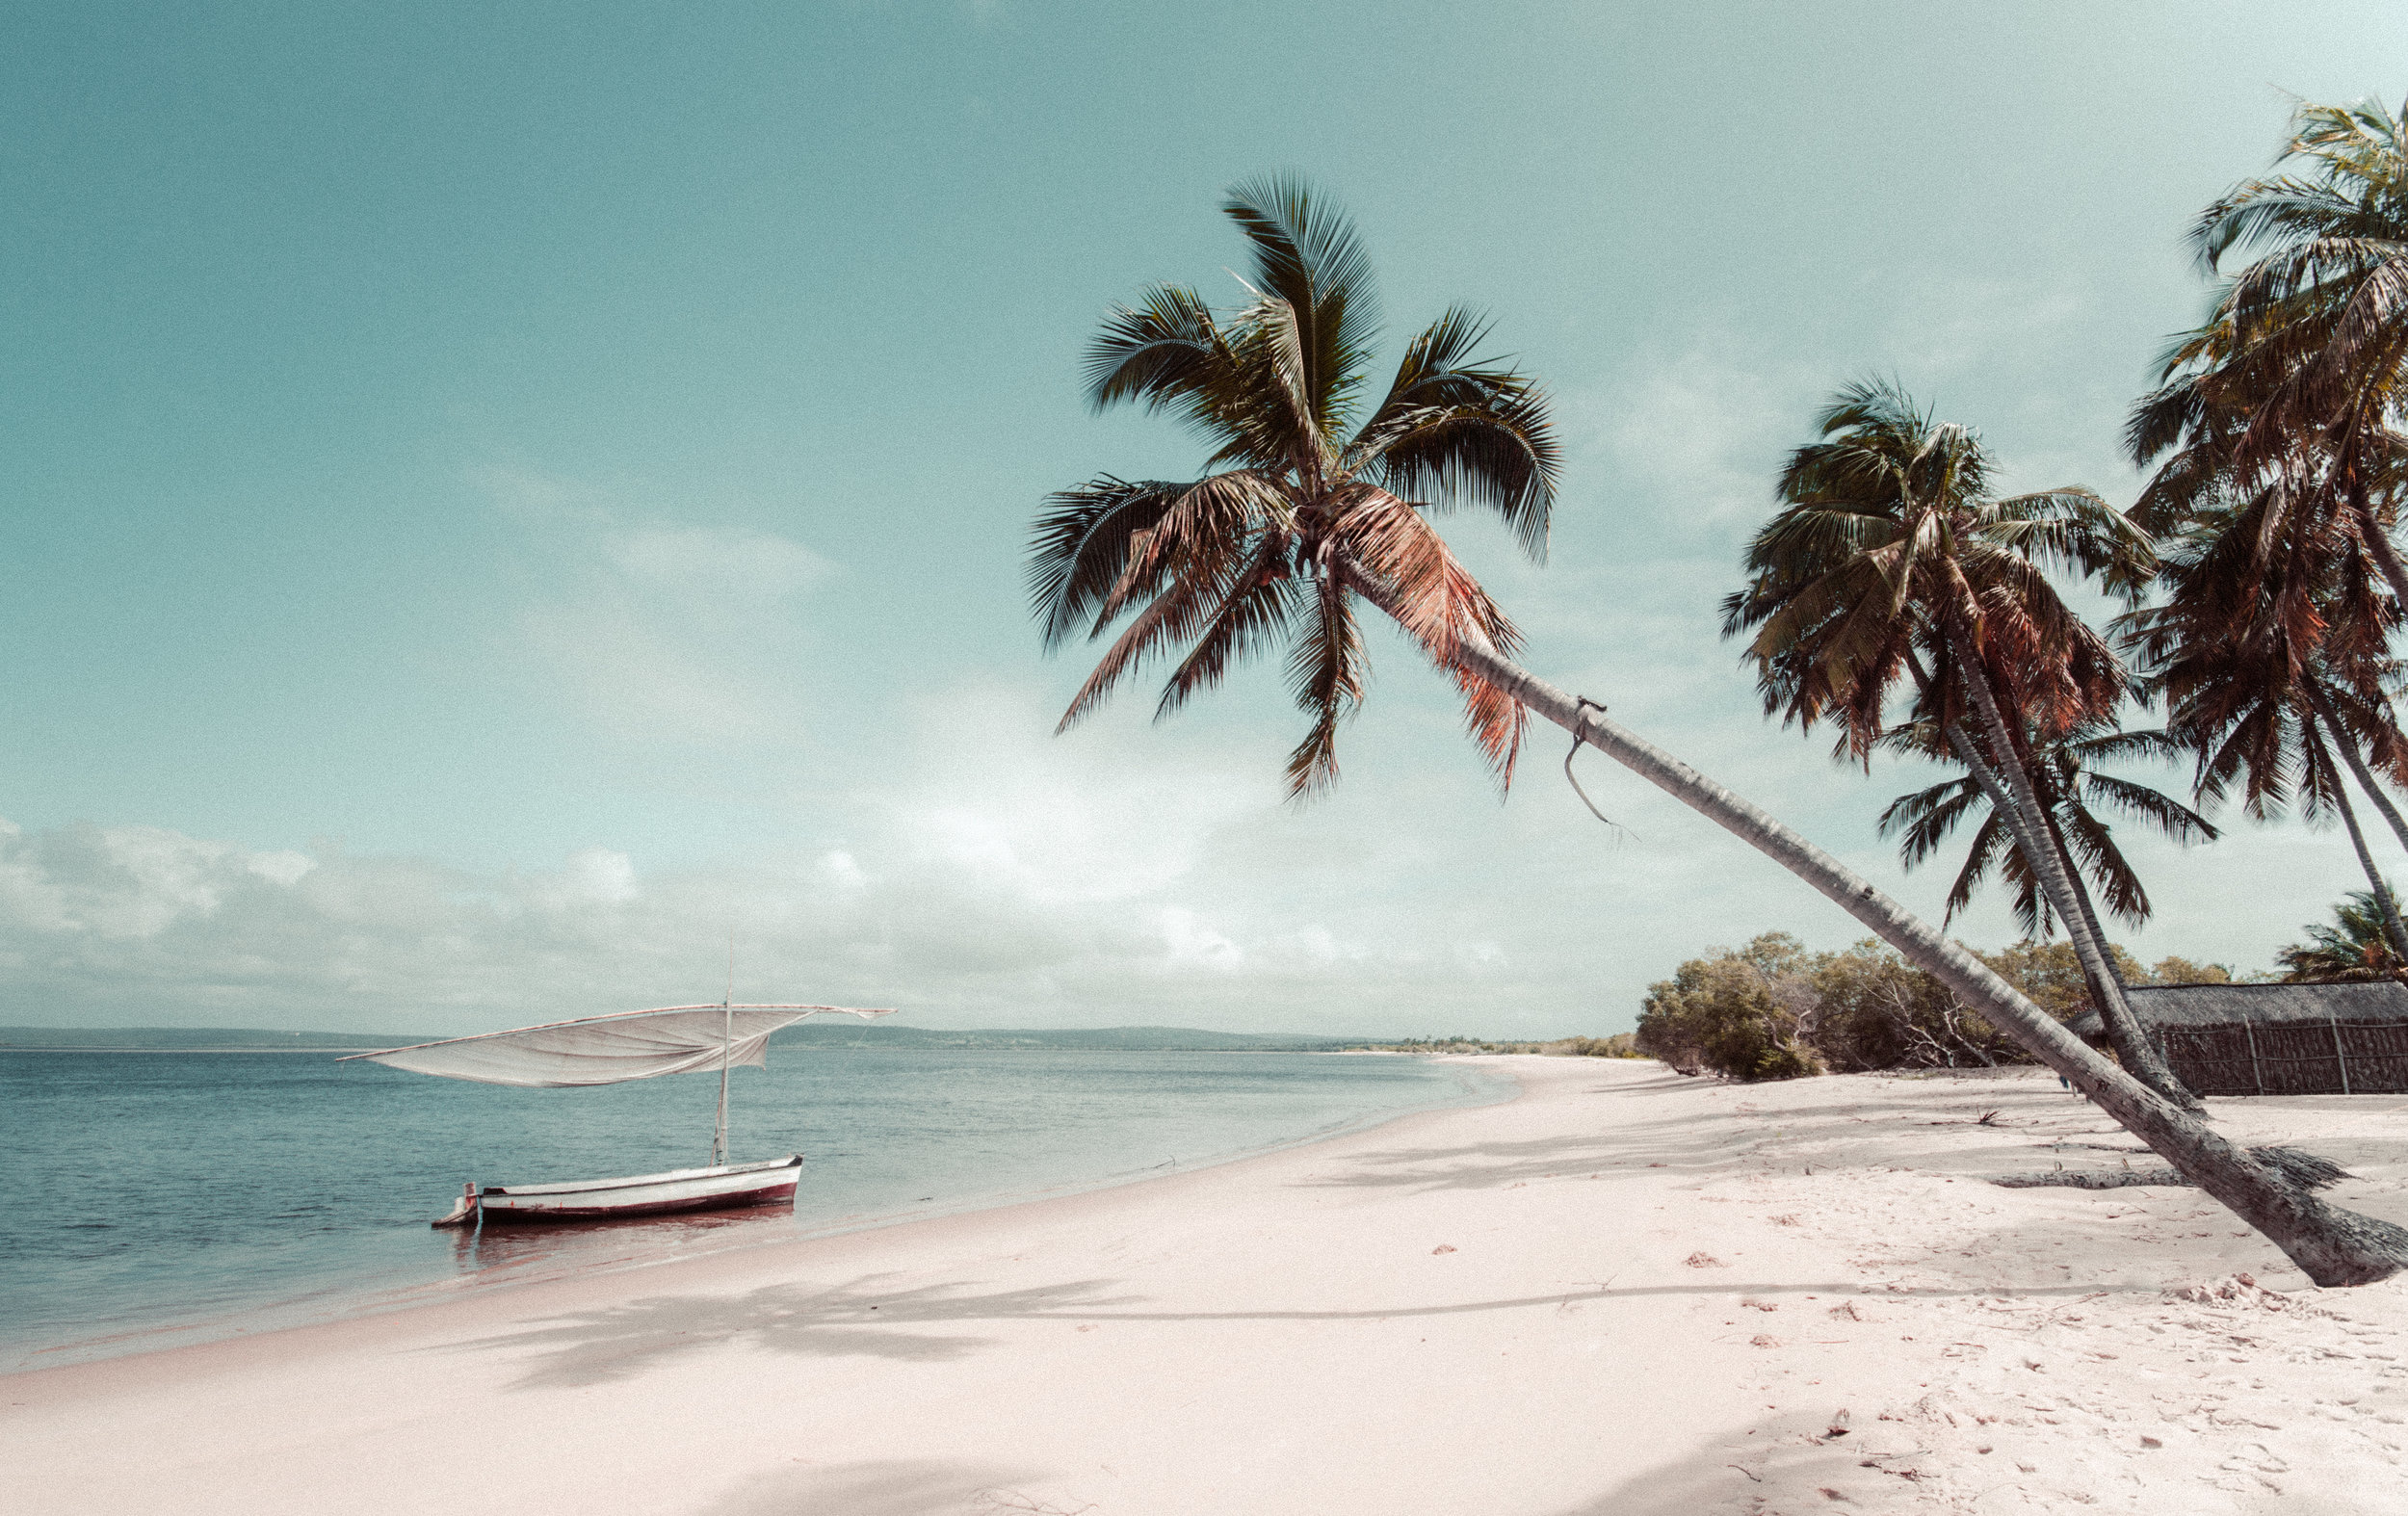 Tropical Cruise Escape Close to Home - From 7 nights from $769pp twin shareSave up to $840 per stateroom plus pay 50% reduced depositIncludes main meals & entertainment onboard, port charges & government feesSale to : 30 Sept 2019Travel commenced: 18 Dec 2019 and completed 30 Jul 2020